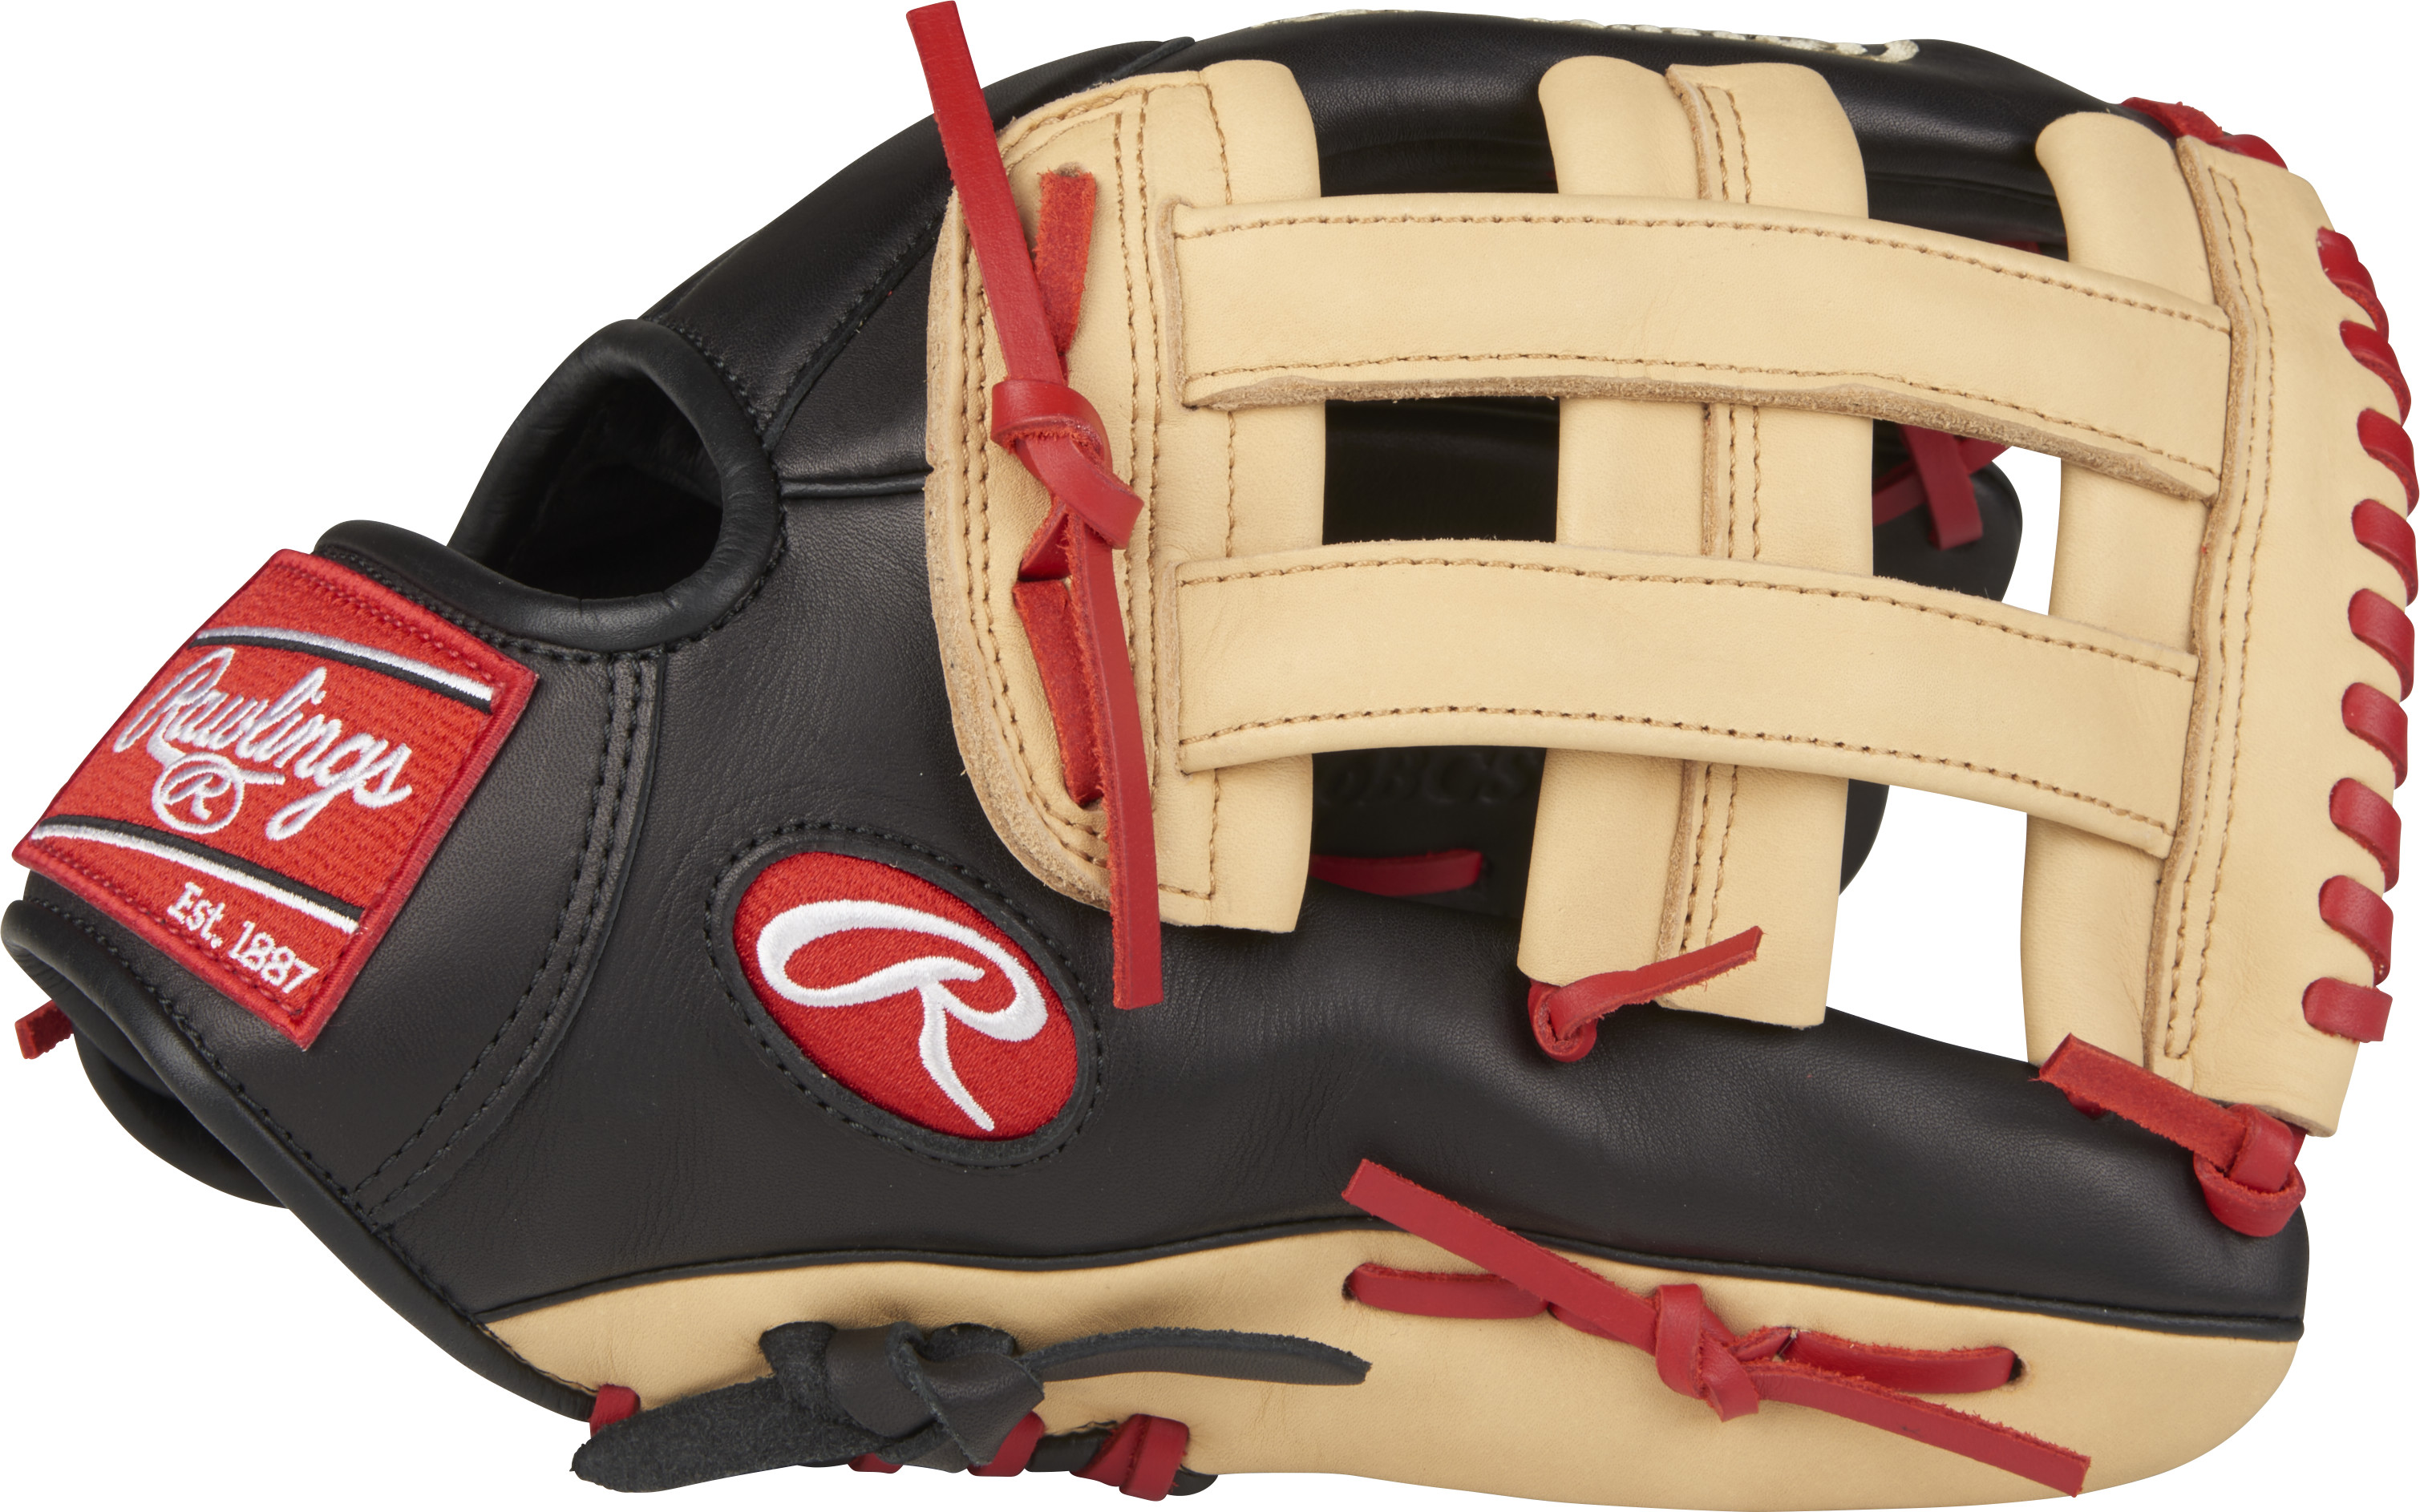 http://www.bestbatdeals.com/images/gloves/rawlings/GXLE3029-6BCS-3.jpg